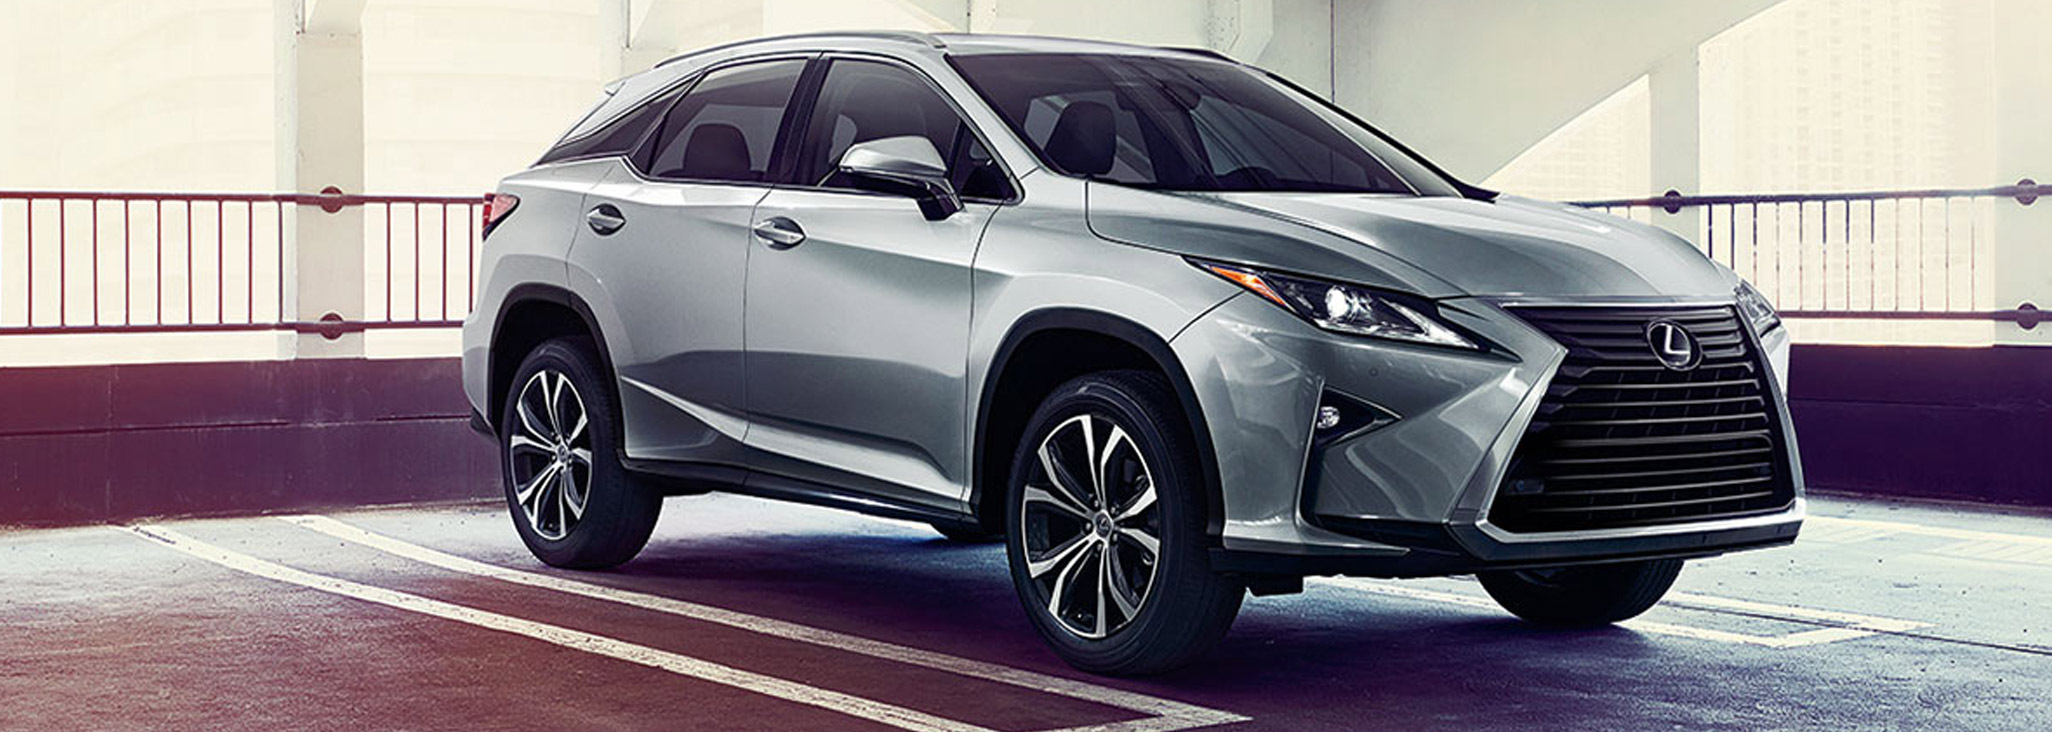 annapolis leases r us coupon luxury toys on the of deals for fusud best specials lexus great sheehy lease choice dacy codes rc your offers